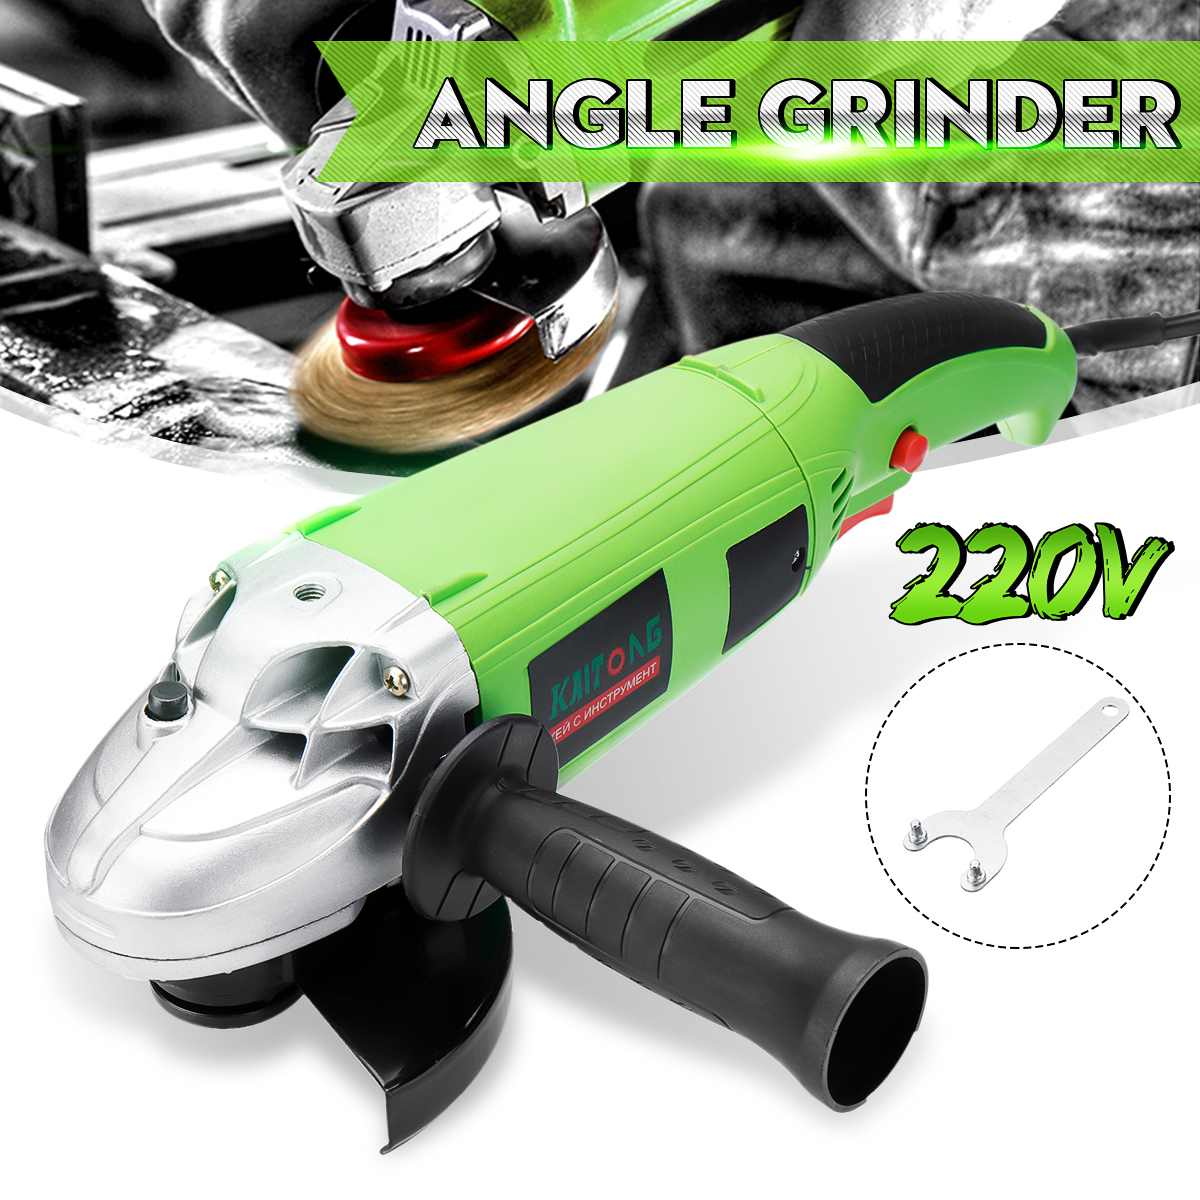 1200W Electric Angle Grinder 125mm Grinding Machine Metal Cutting Tool 10000RPM Left/Right Adjustable Anti-Slip Auxiliary Handle1200W Electric Angle Grinder 125mm Grinding Machine Metal Cutting Tool 10000RPM Left/Right Adjustable Anti-Slip Auxiliary Handle